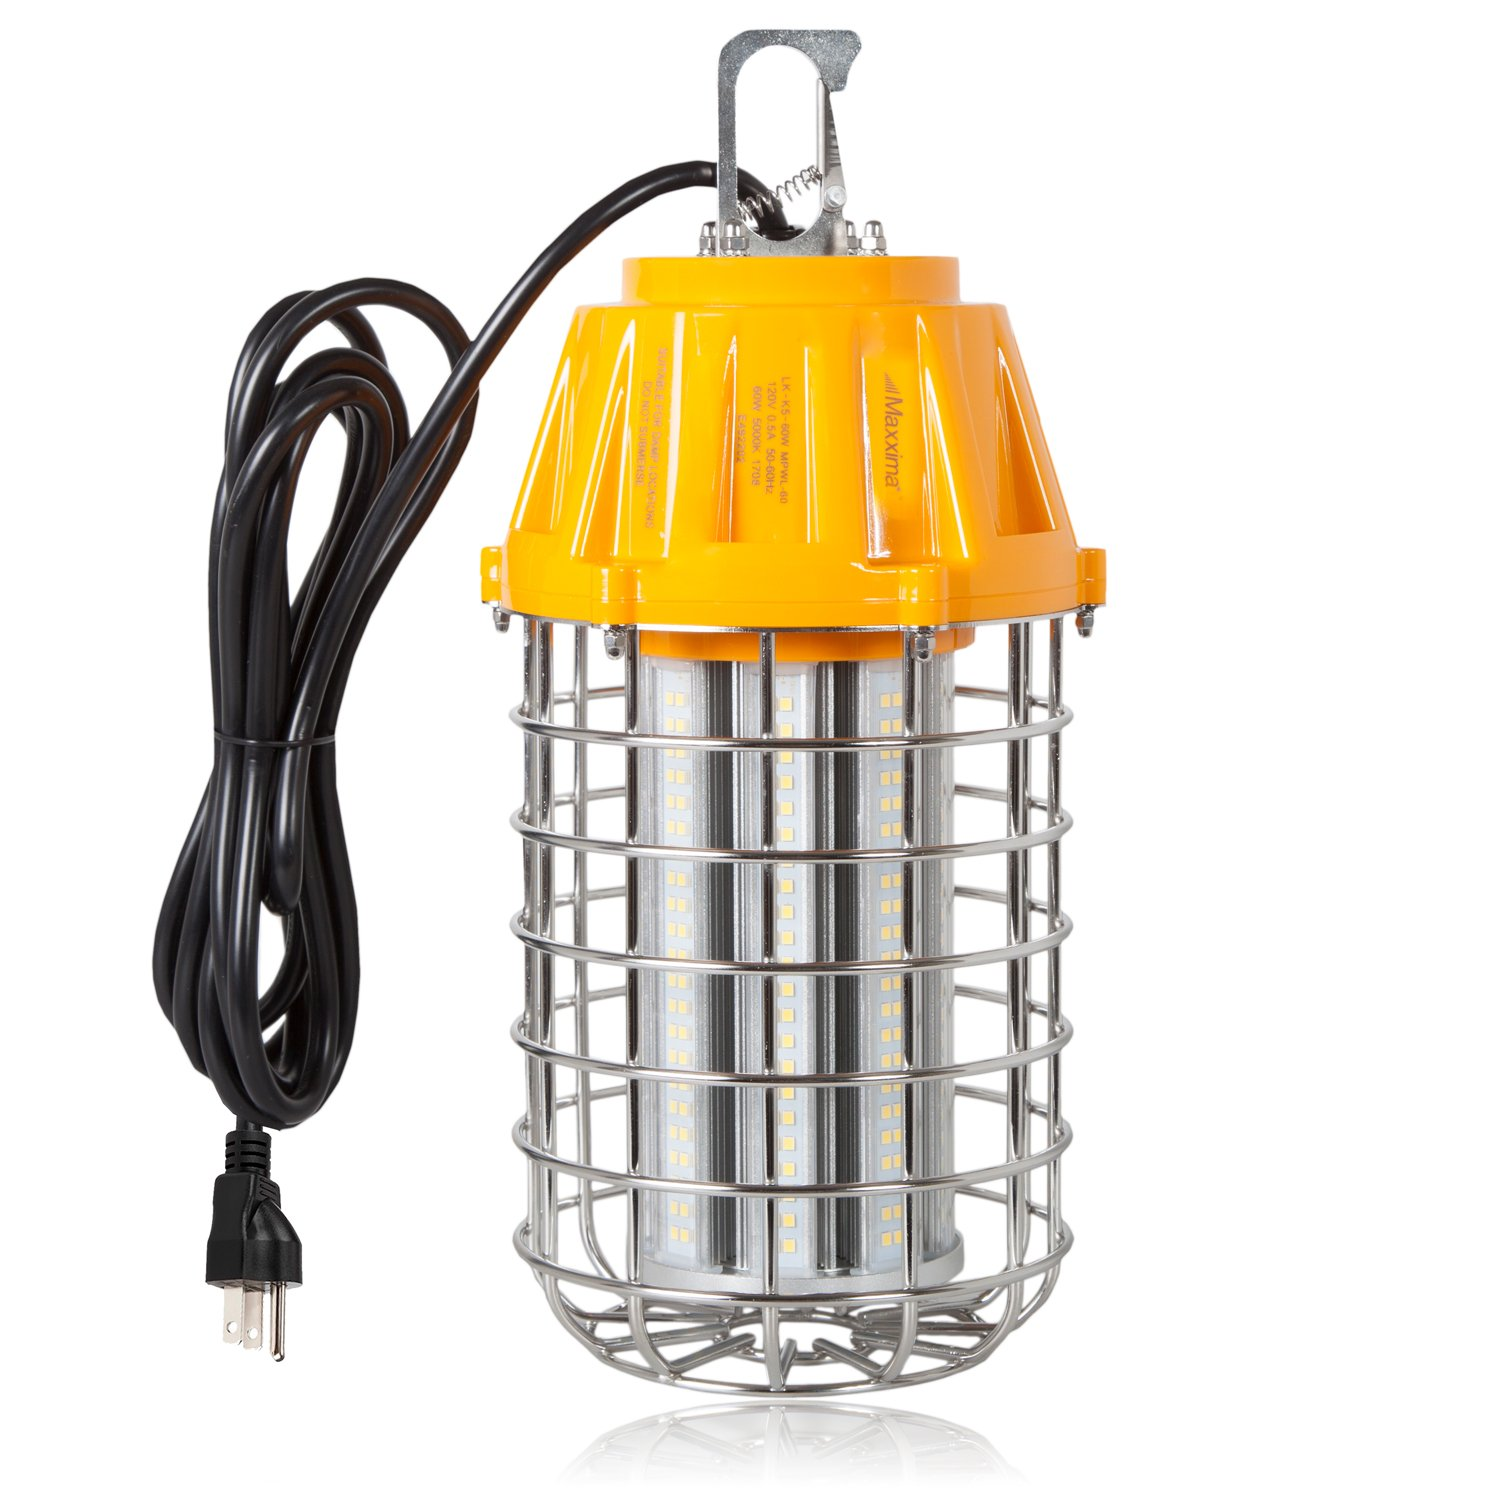 Maxxima High Bay LED Temporary Work Light Fixture, 60 Watt 7200 Lumens Daylight 5000K, Stainless Steel Cage Guard, Plug in